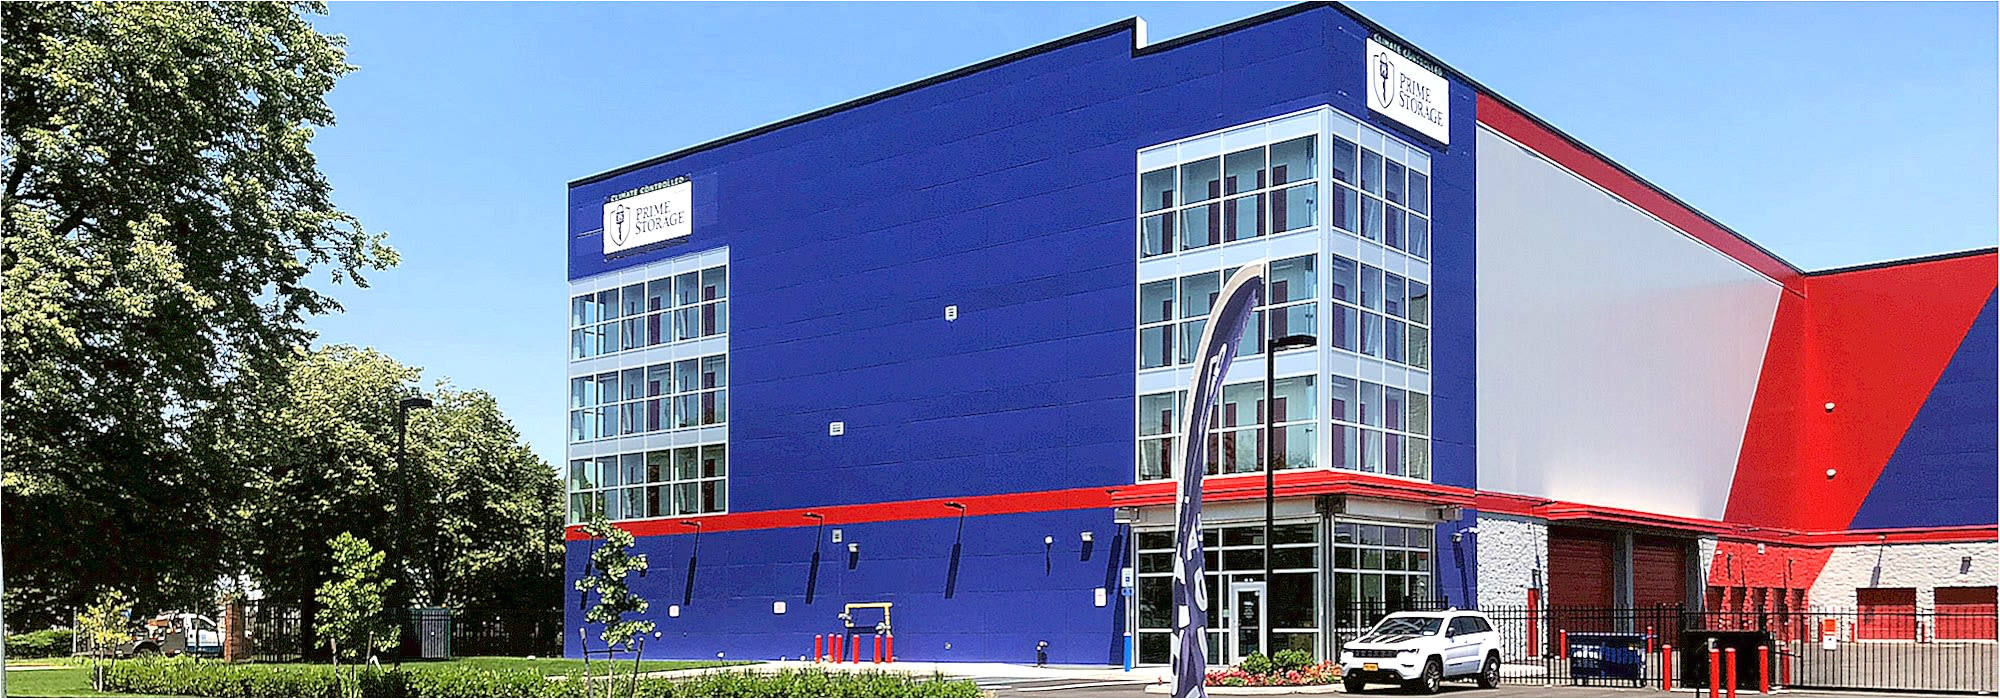 exterior image of prime storage in queens ny